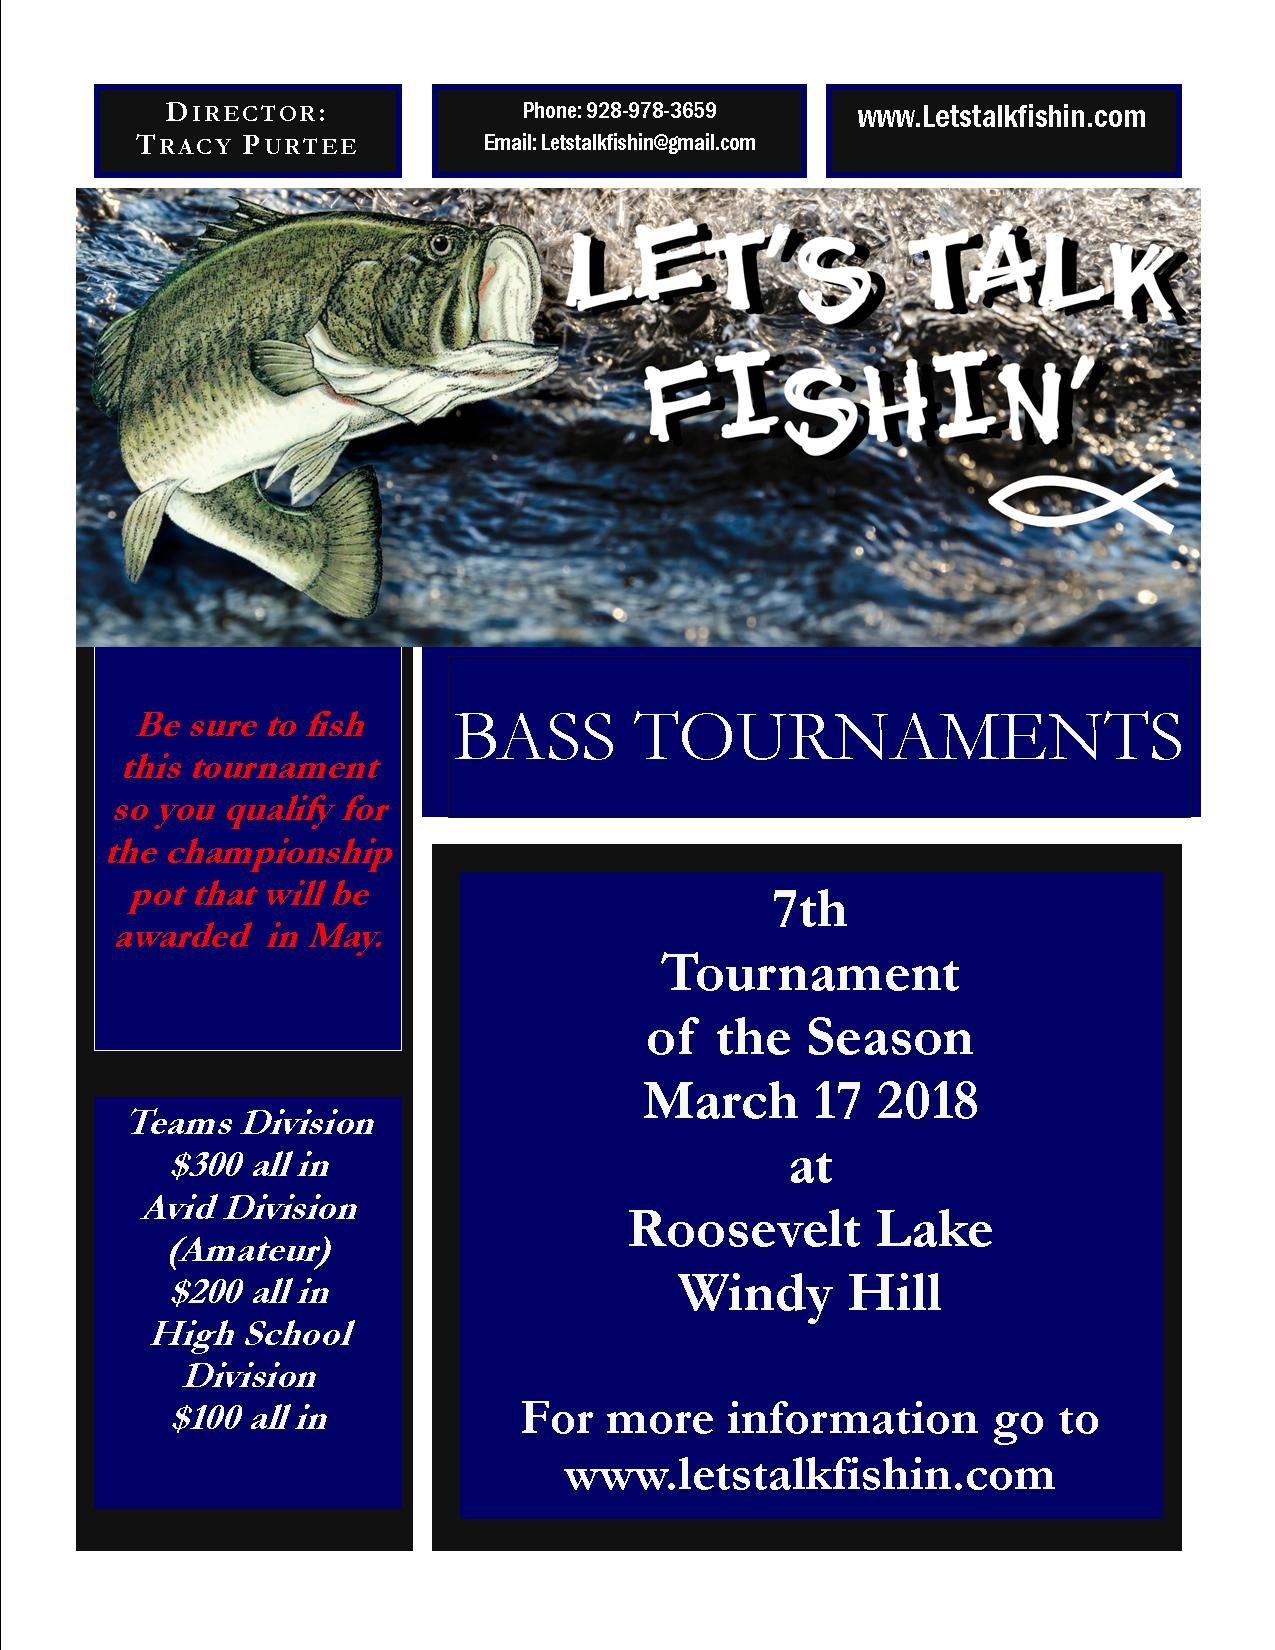 Click image for larger version  Name:7th Tournament.jpg Views:1640 Size:283.6 KB ID:96826